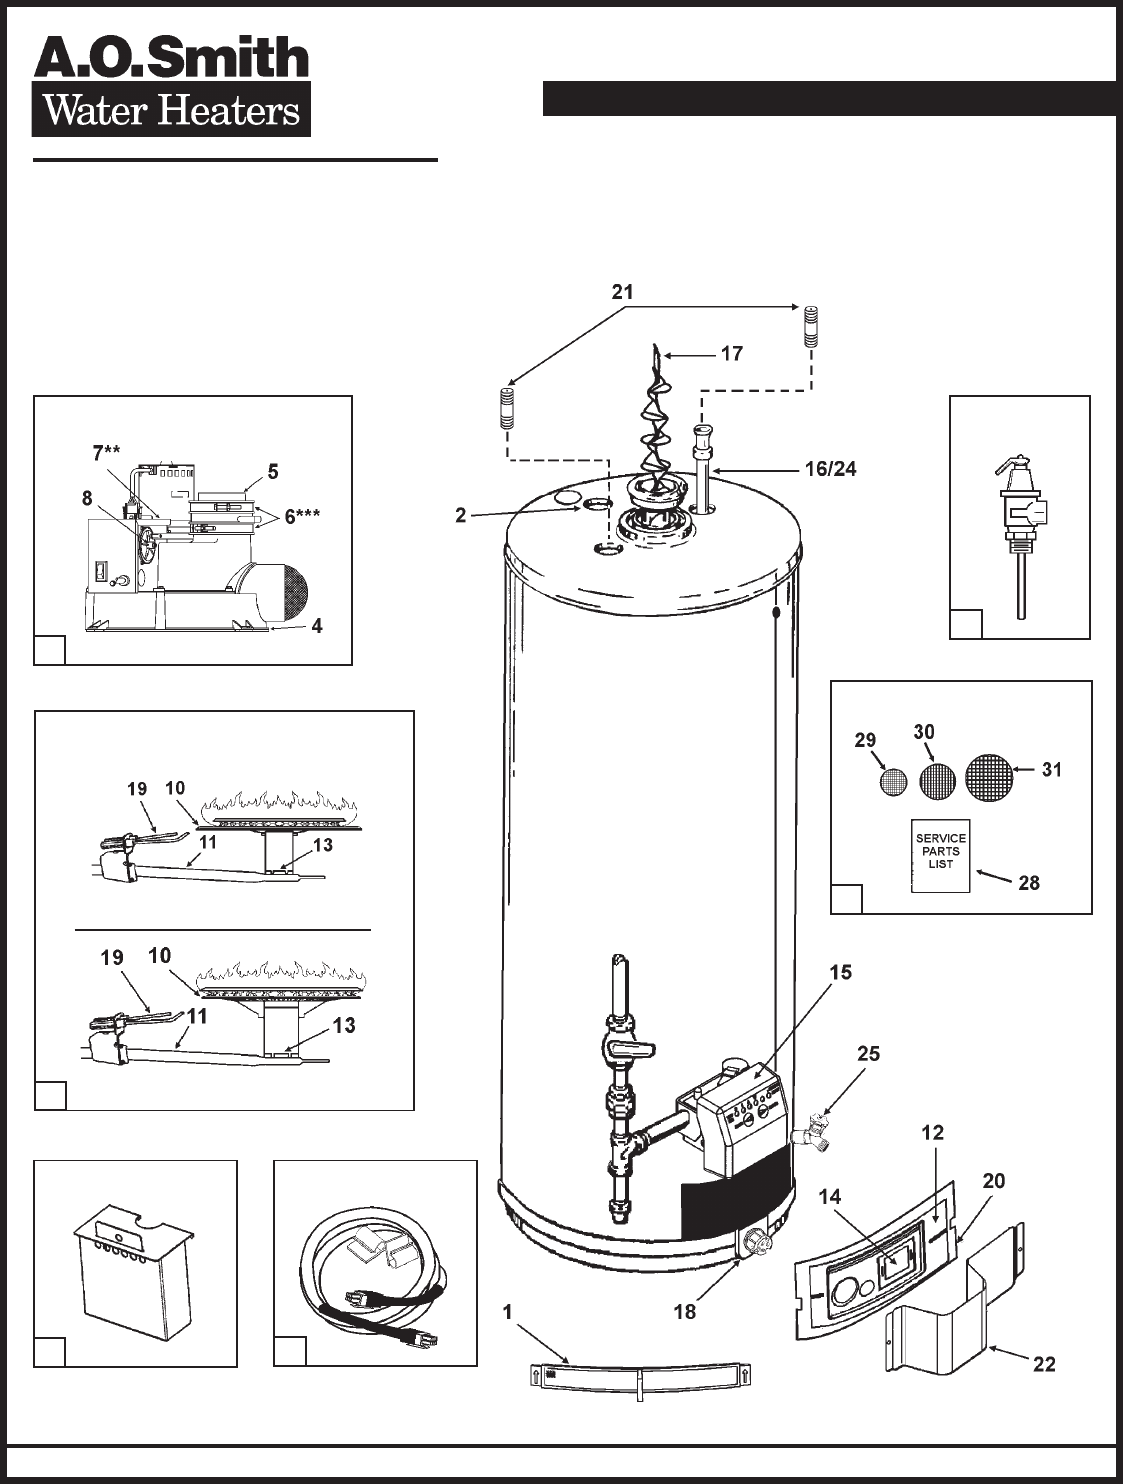 Ao Smith Electric Water Heater Wiring Diagram : 45 Wiring